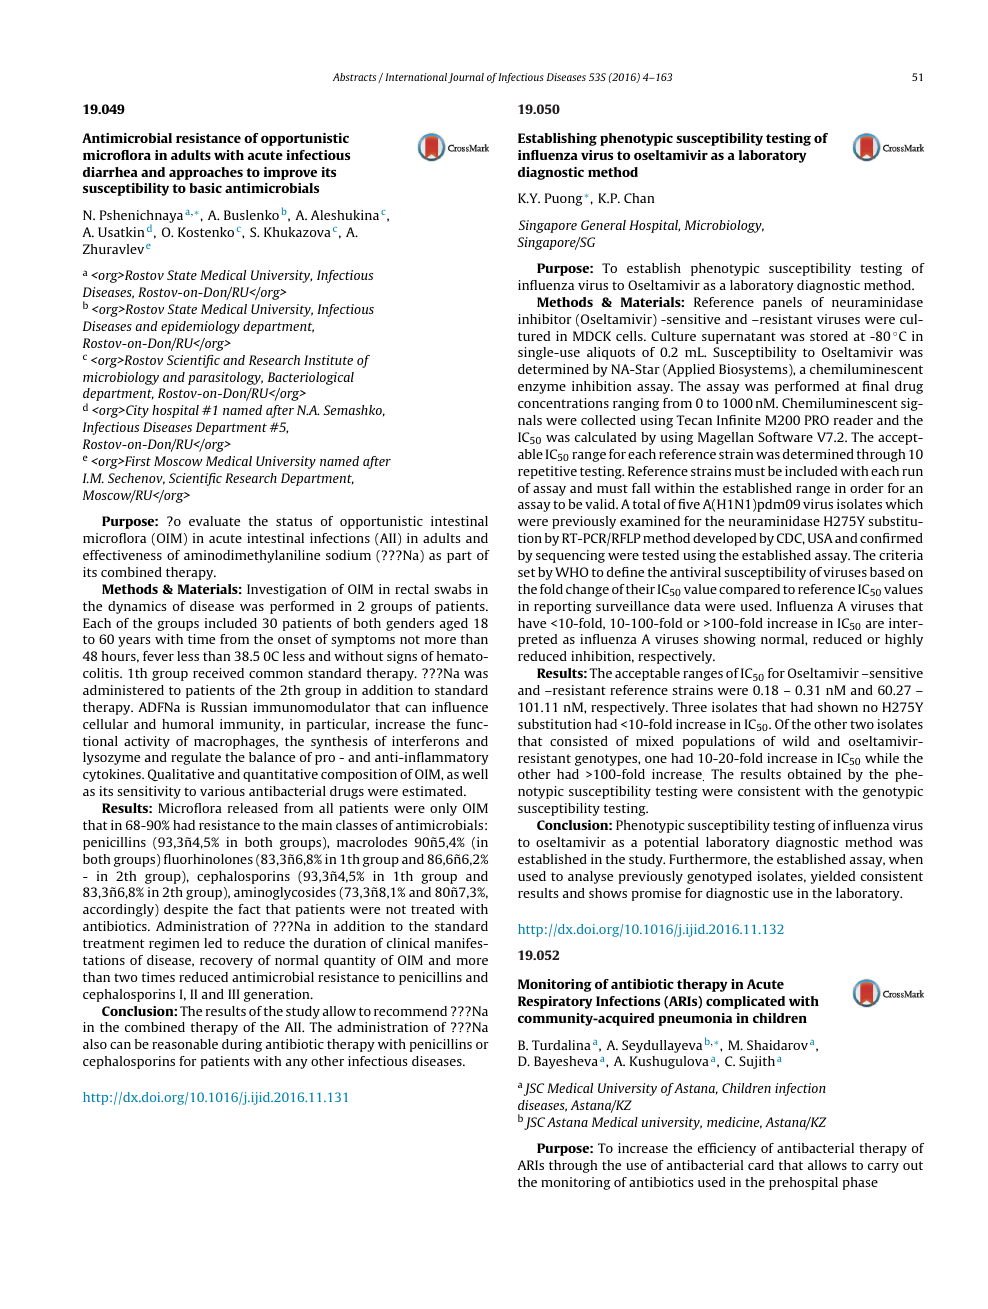 Monitoring of antibiotic therapy in Acute Respiratory Infections